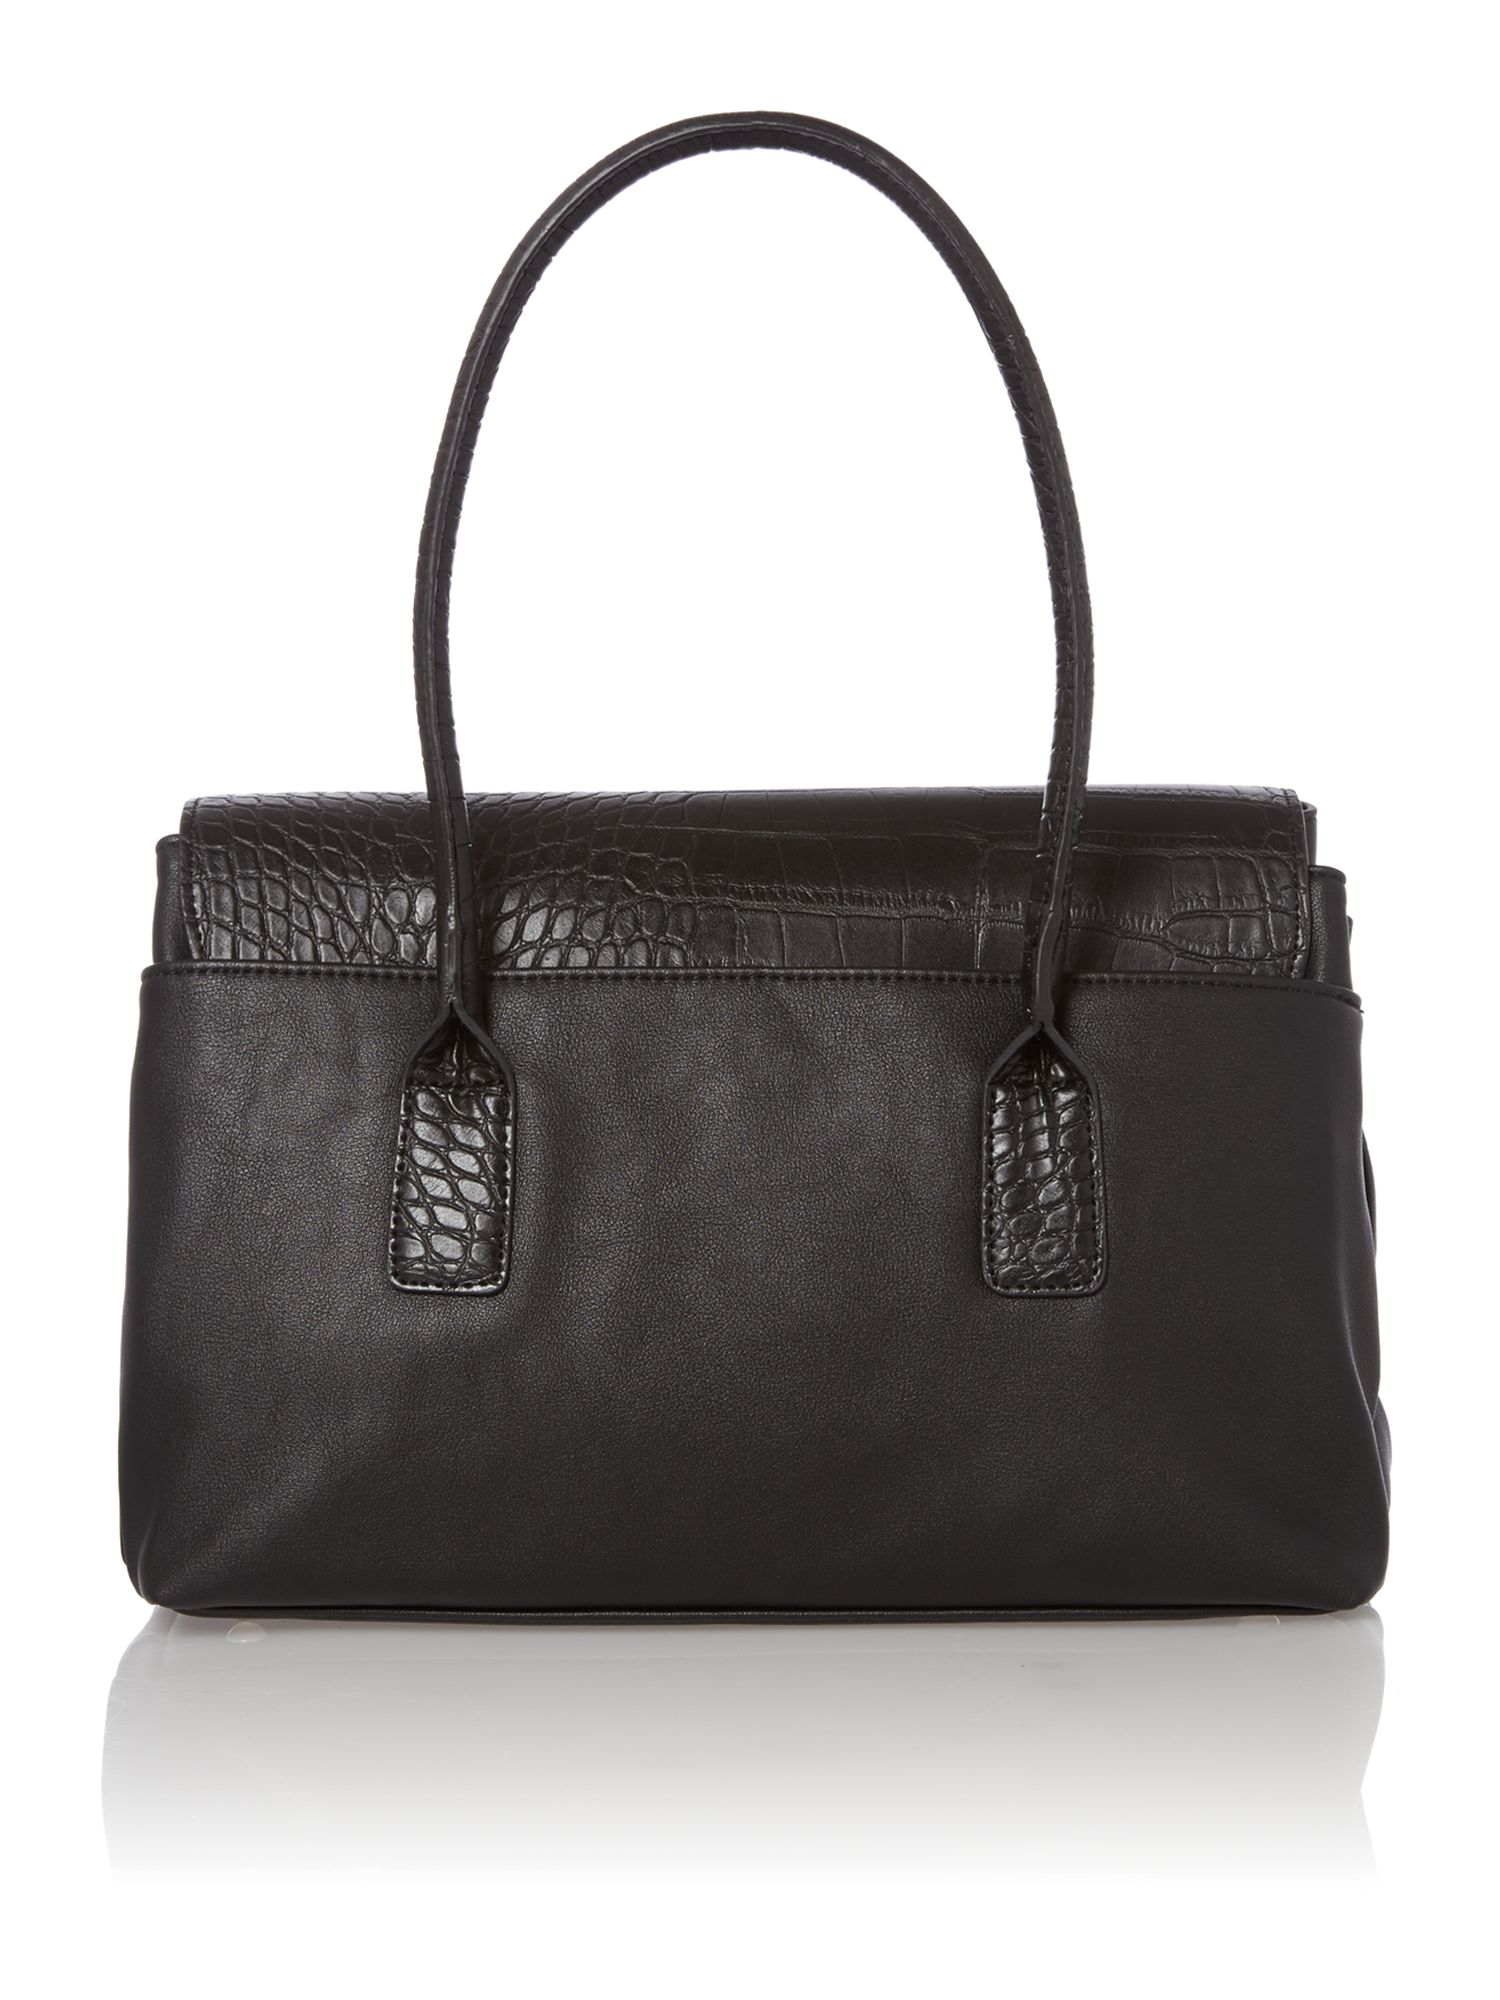 Olivia Jade black flap over tote bag